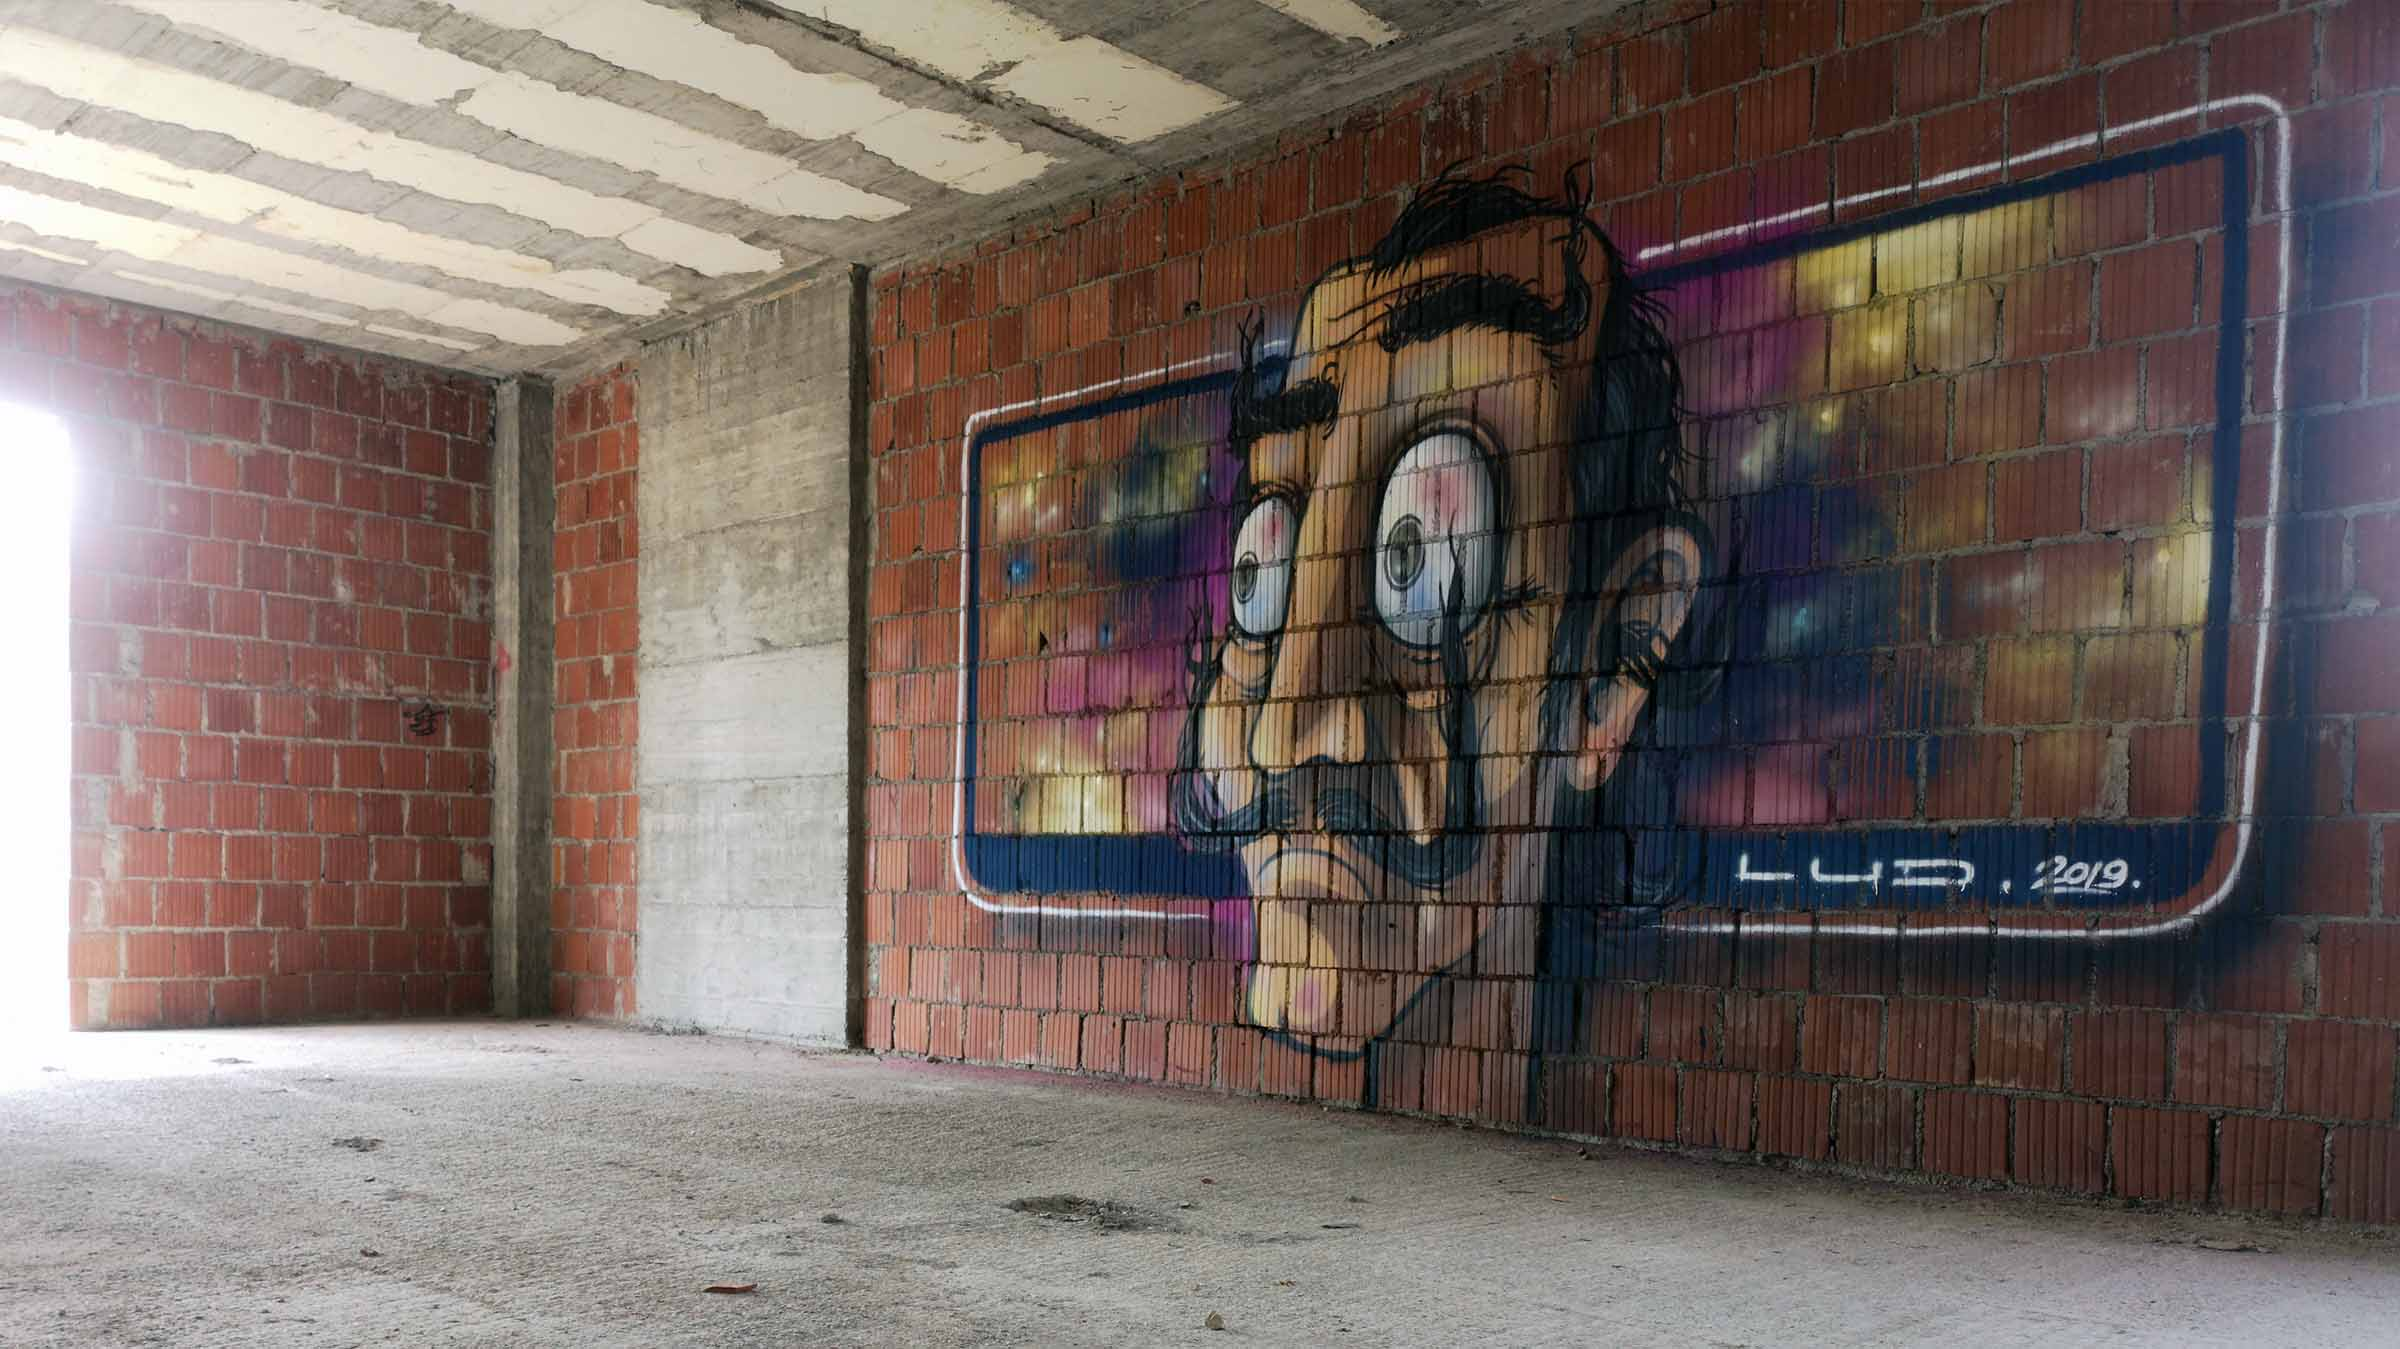 graffiti street art decoration portrait